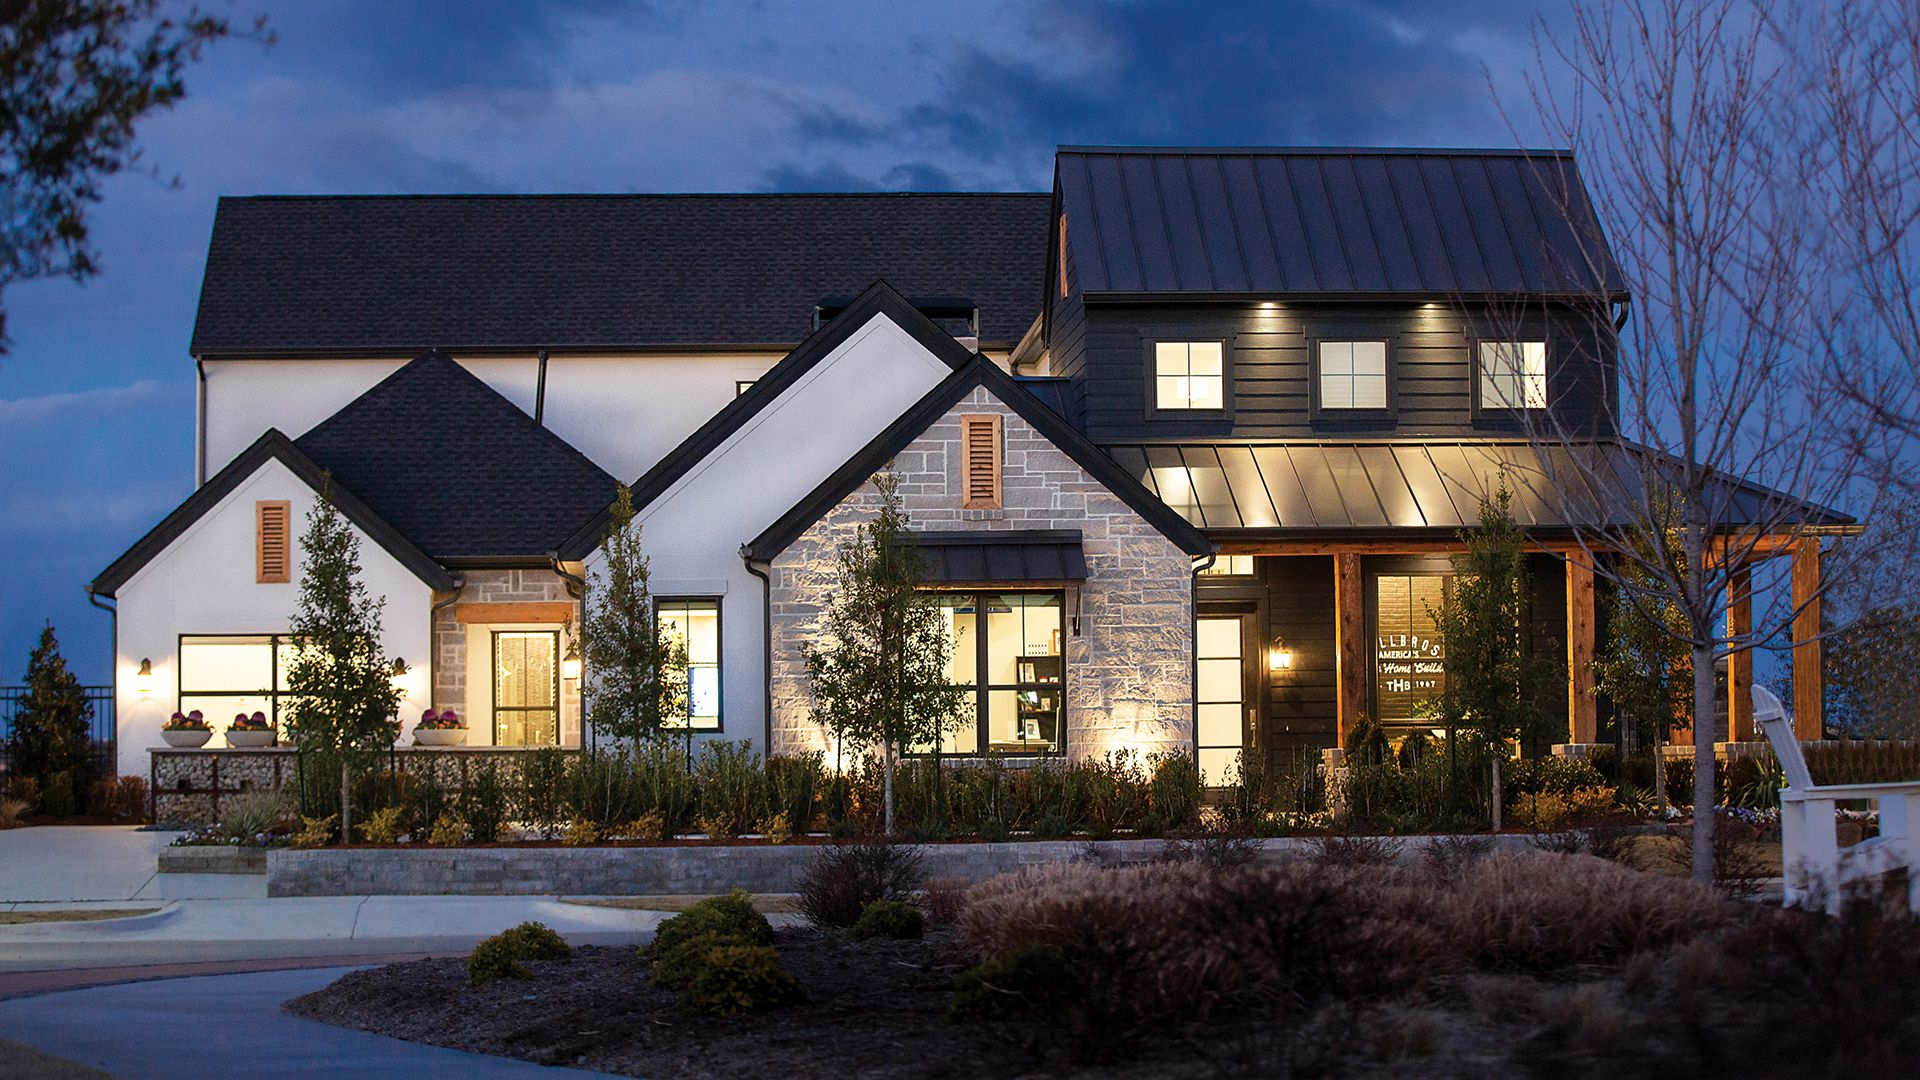 Texas homes for sale by Toll Brothers®. New home designs available in our new luxury … With ...